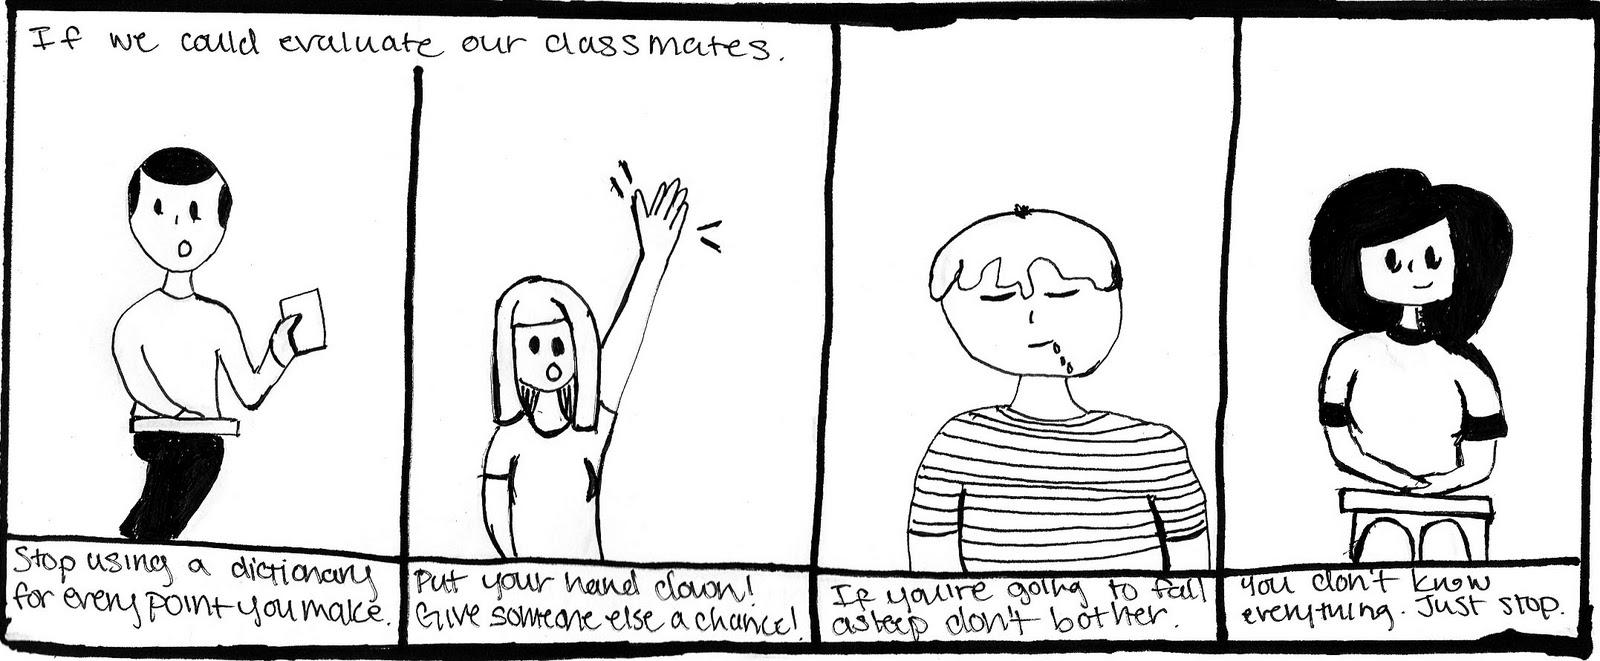 EMJF Comic: Class Evaluations